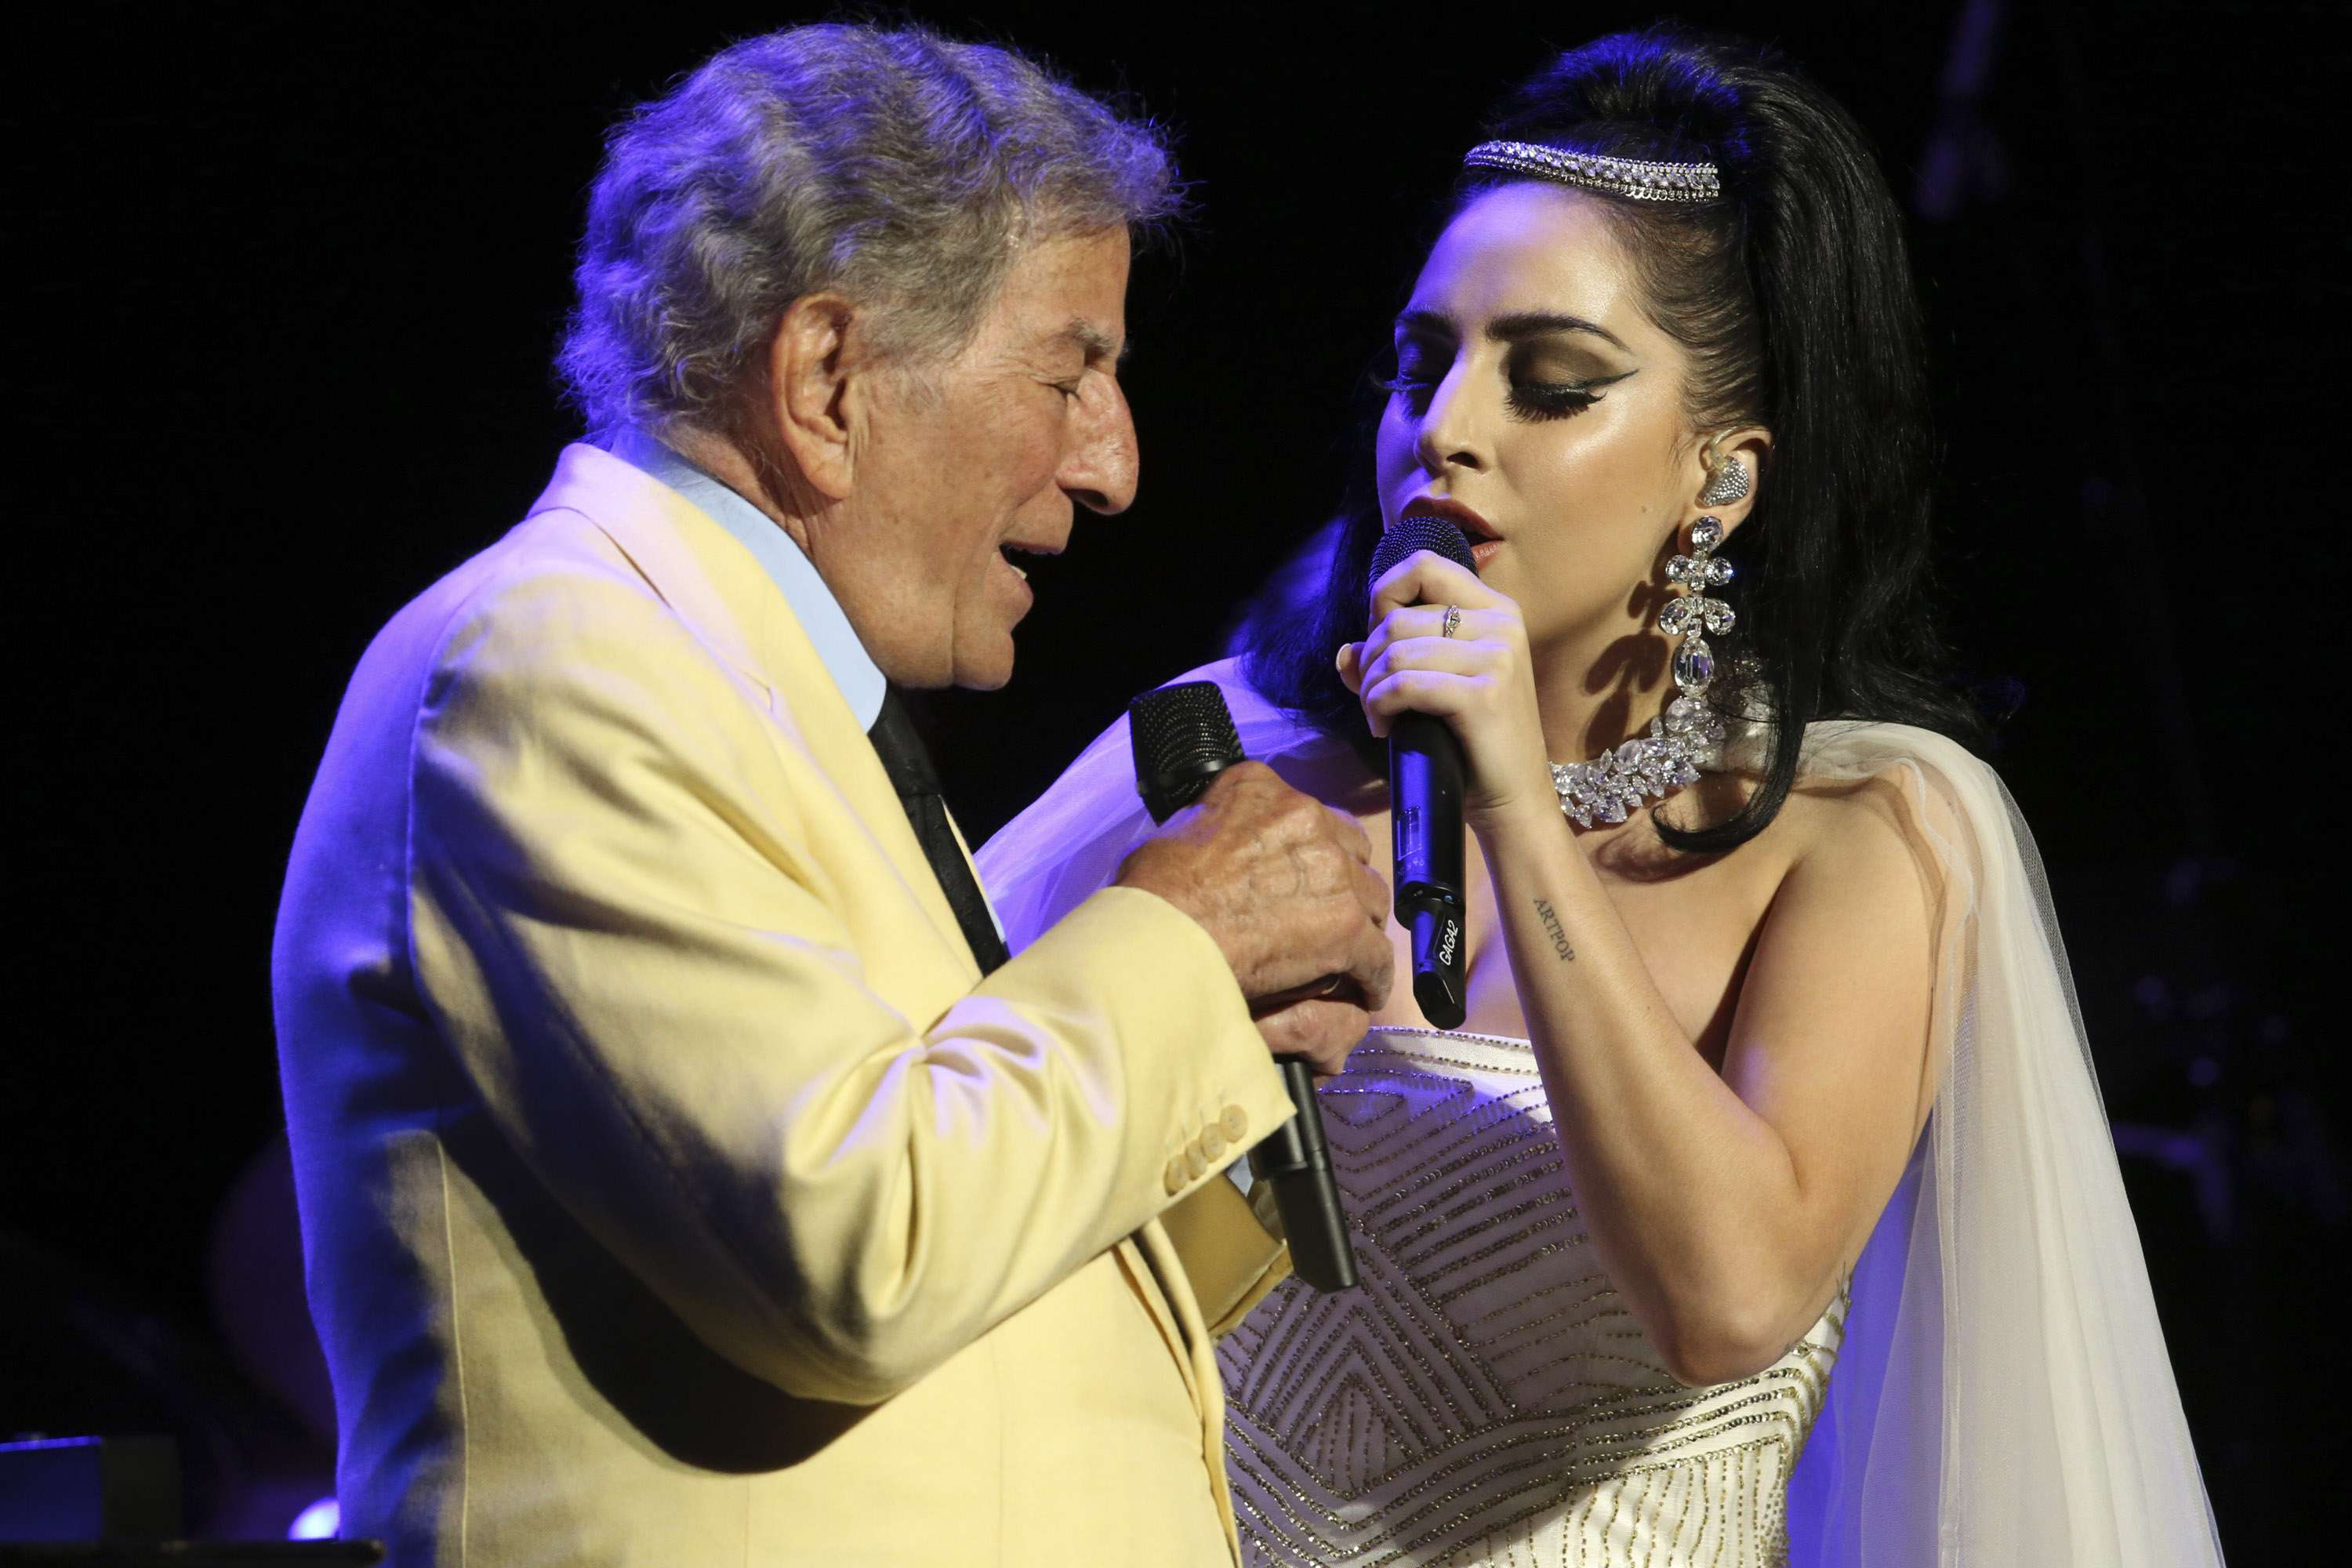 Lady Gaga y Tony Bennett cantarán en la ceremonia de los Grammy. Foto: Getty Images